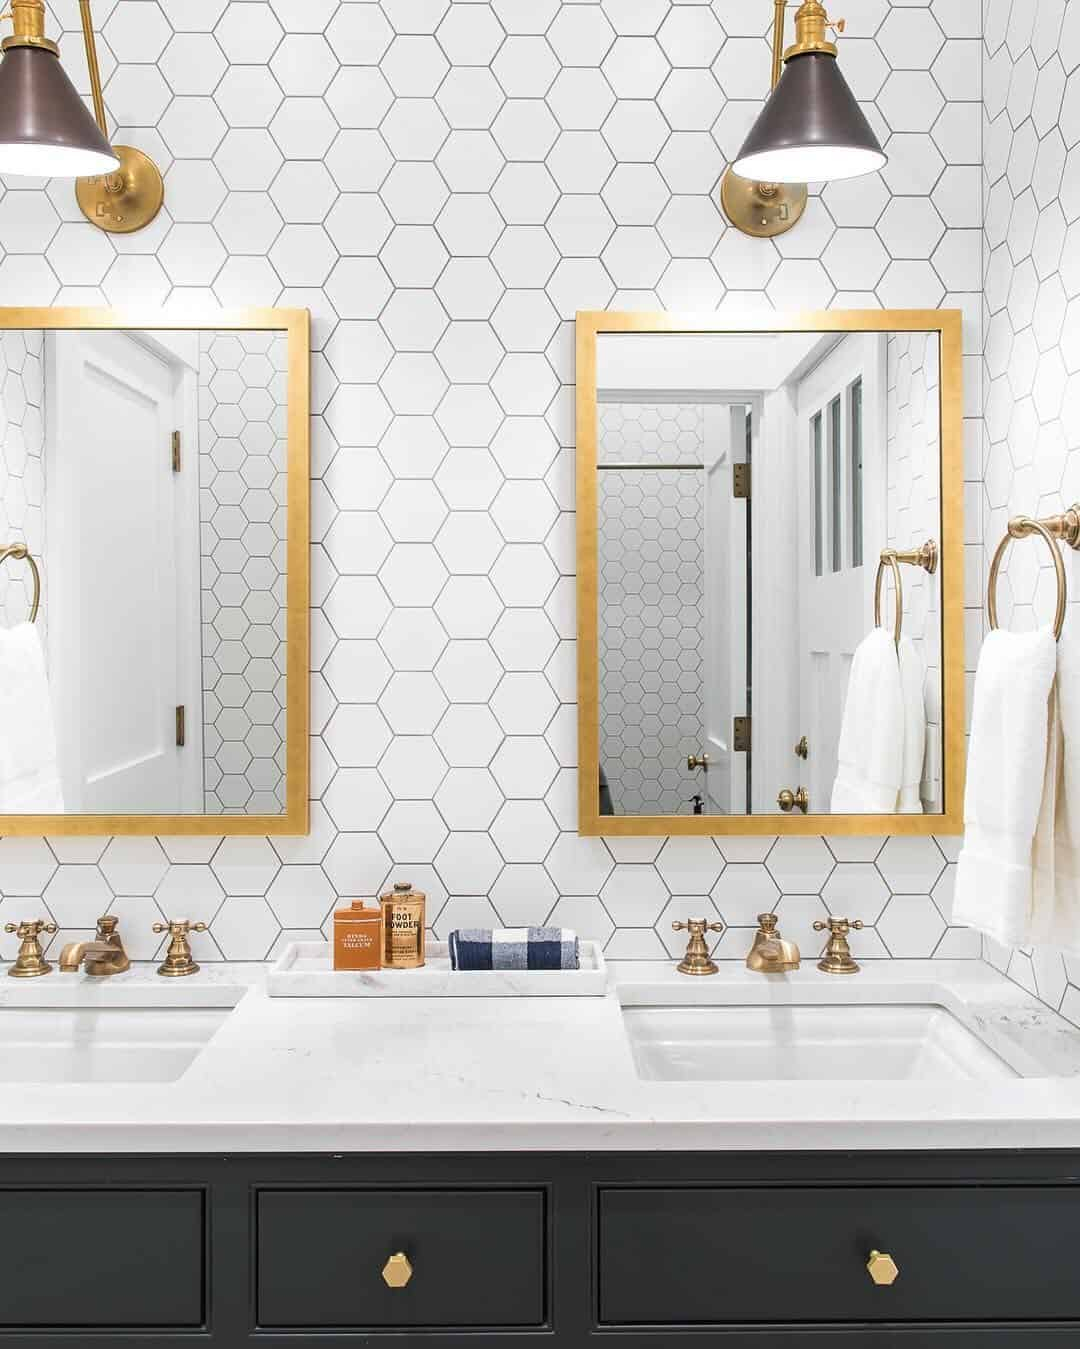 Brass accent Charismatic Bathroom Design Ideas To Hypnotize Everyone In Your Home